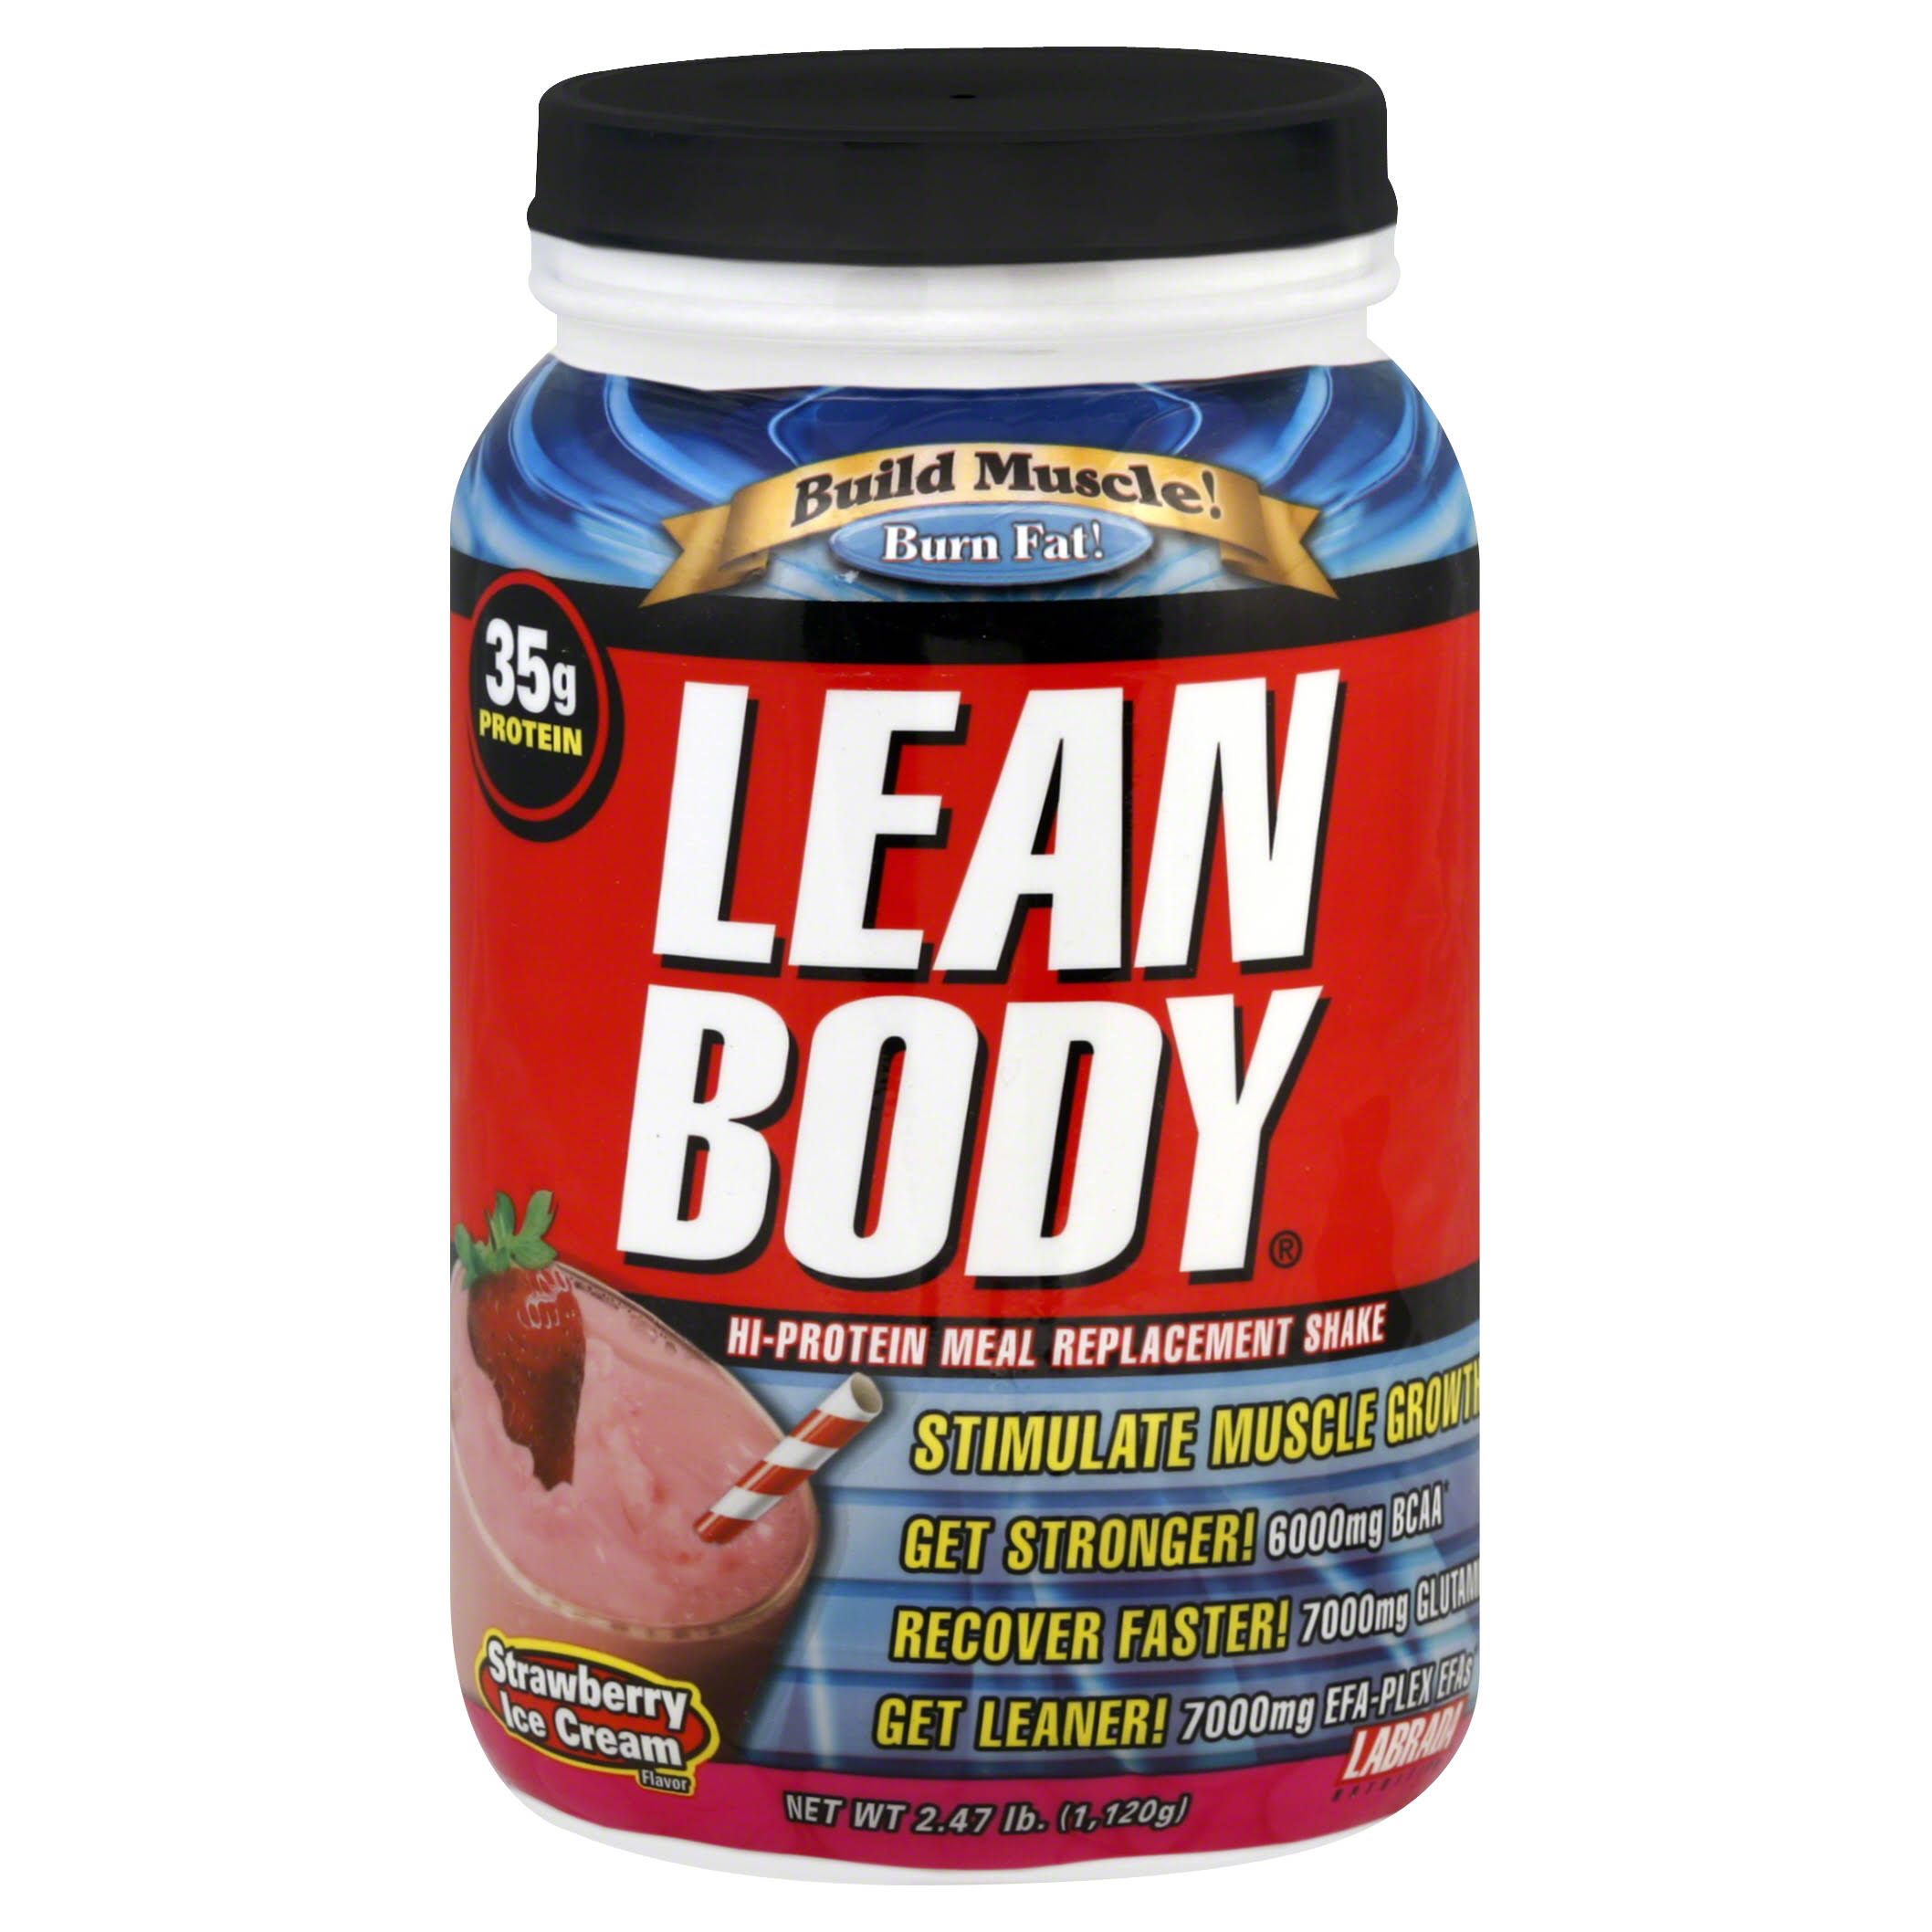 Labrada Nutrition Lean Body Hi-Protein Meal Replacement Shake - Strawberry Ice Cream, 2.47lbs